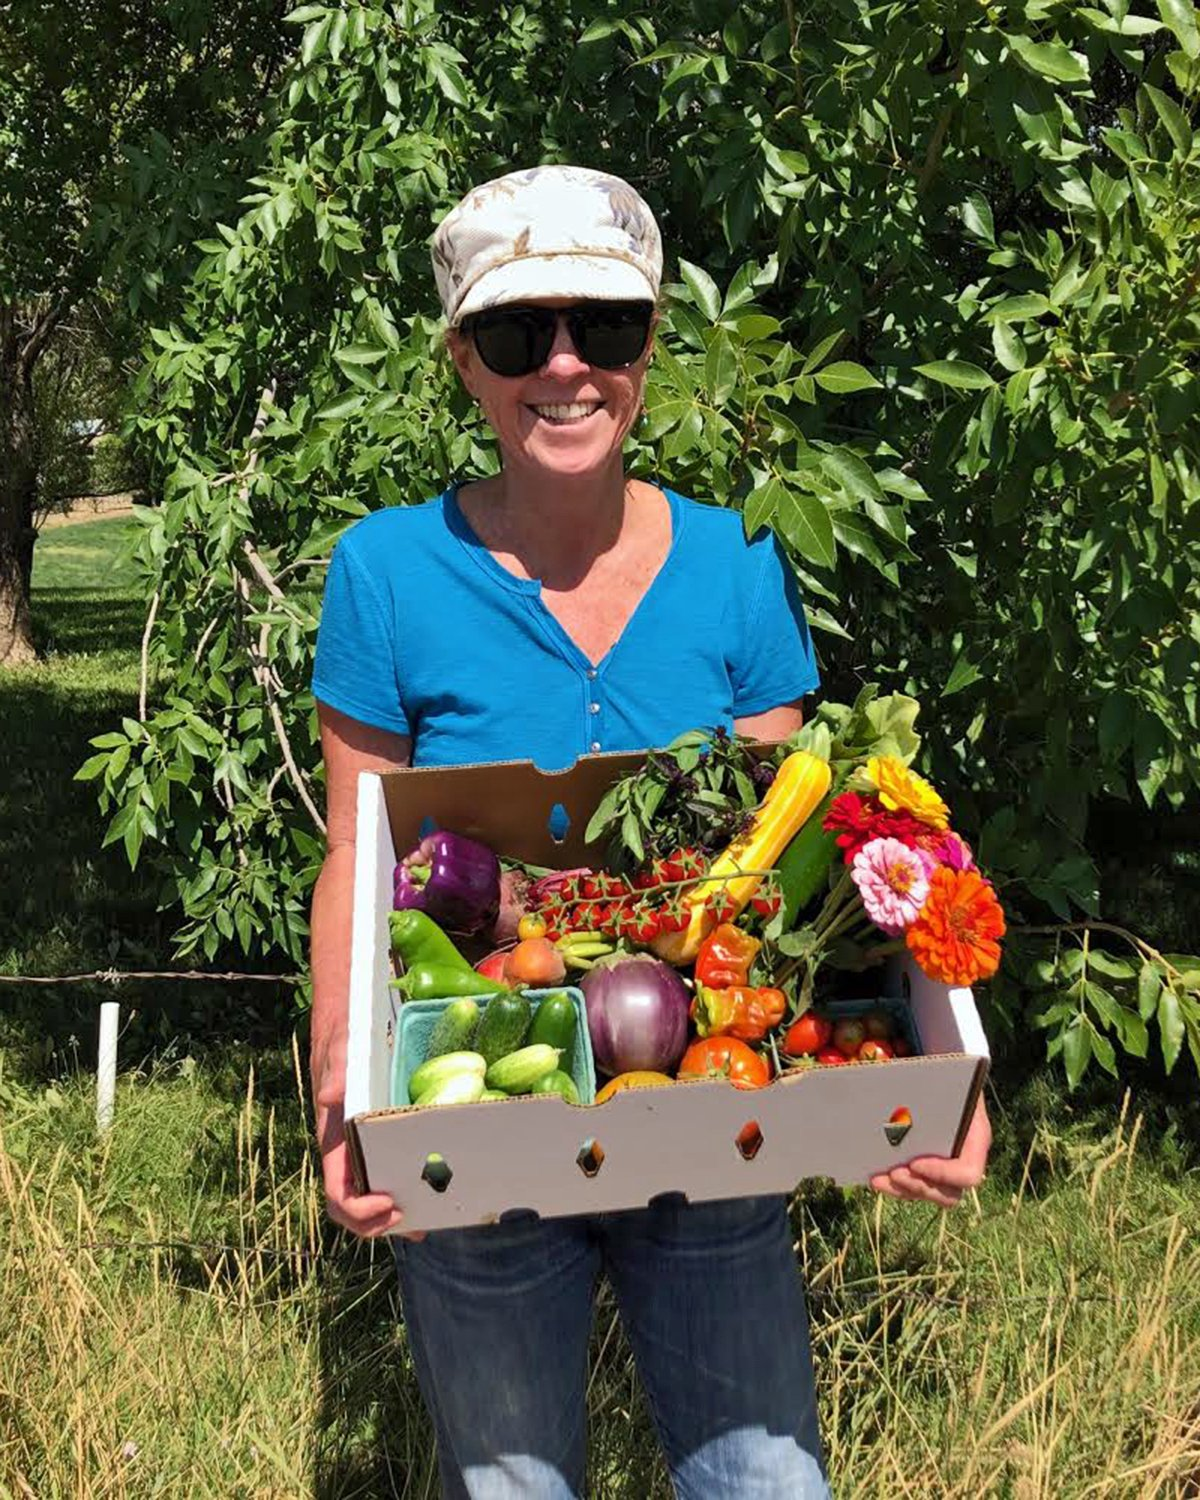 Mountain Freshies co-owner Nancy Scheinkman proudly displays a vibrant summer produce box. Gearing up for a busy winter, Scheinkman and her business and life partner Greg Olsky are ready to offer delicious winter citrus to residents of the RFV.. Courtesy photo